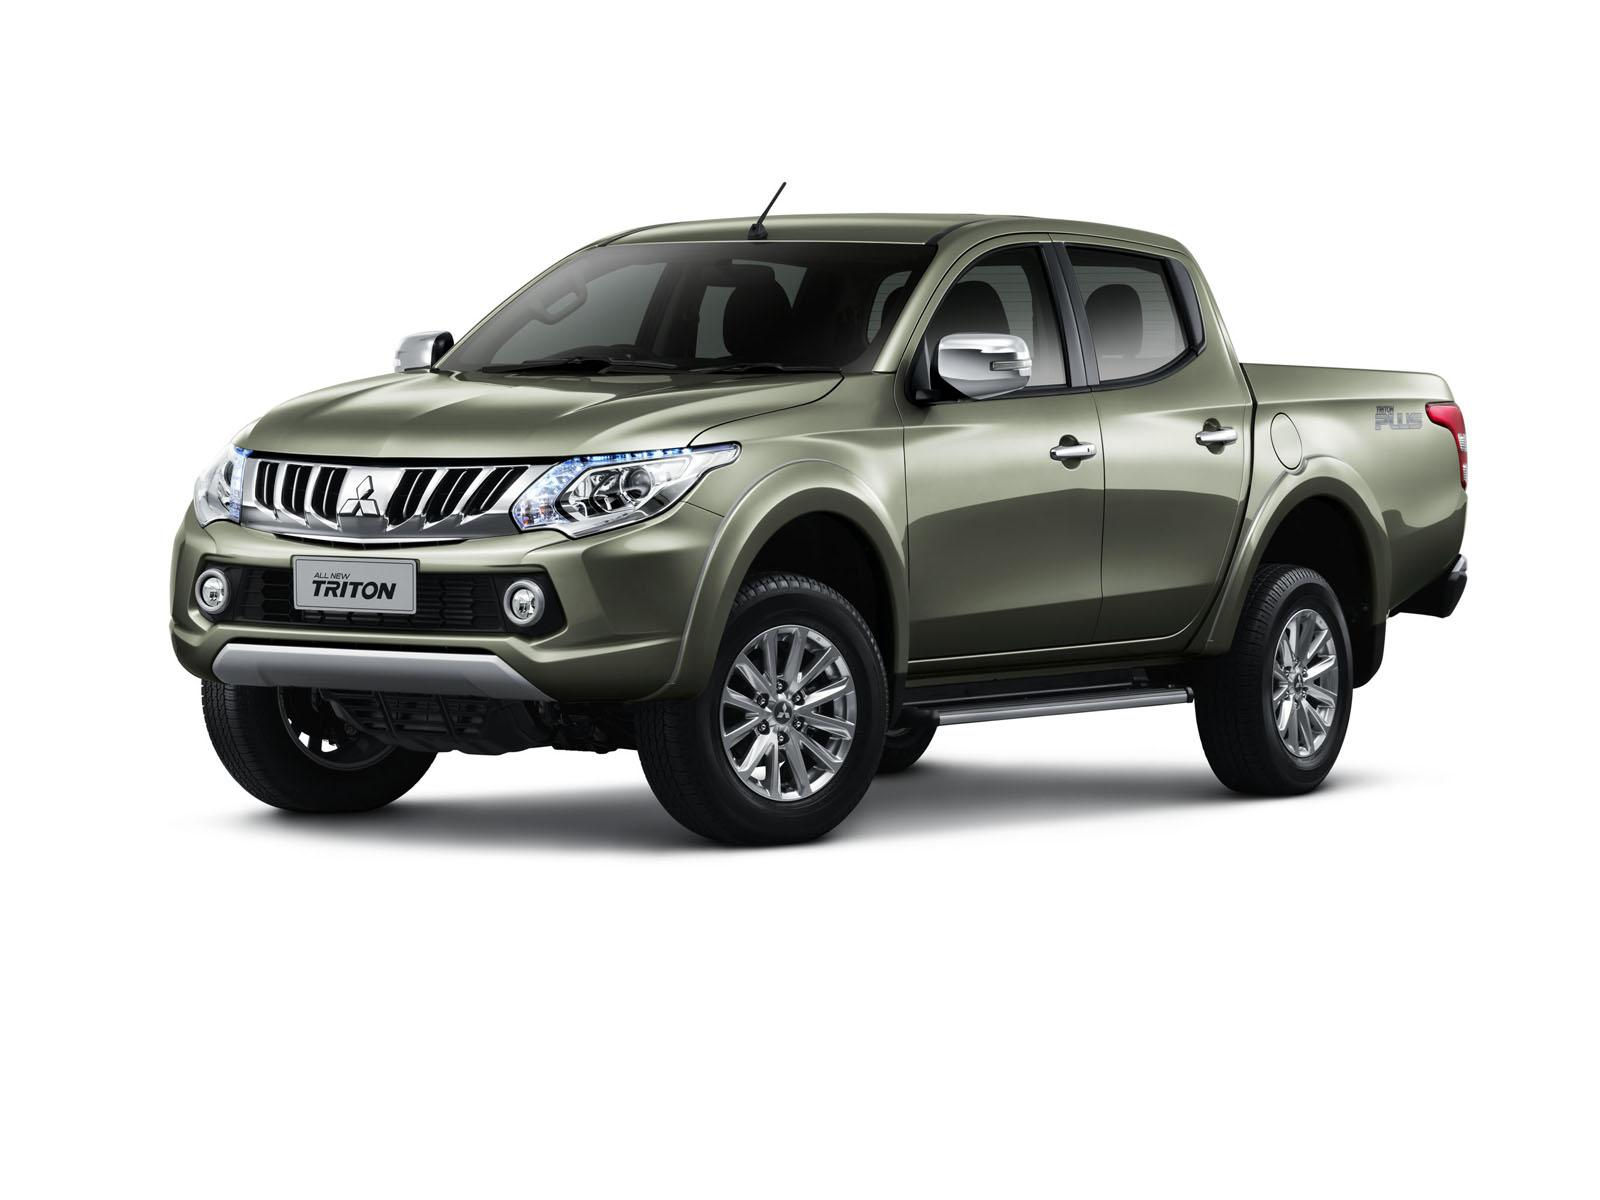 2015 Mitsubishi Triton / L200 Debuts in Thailand [Video] - autoevolution